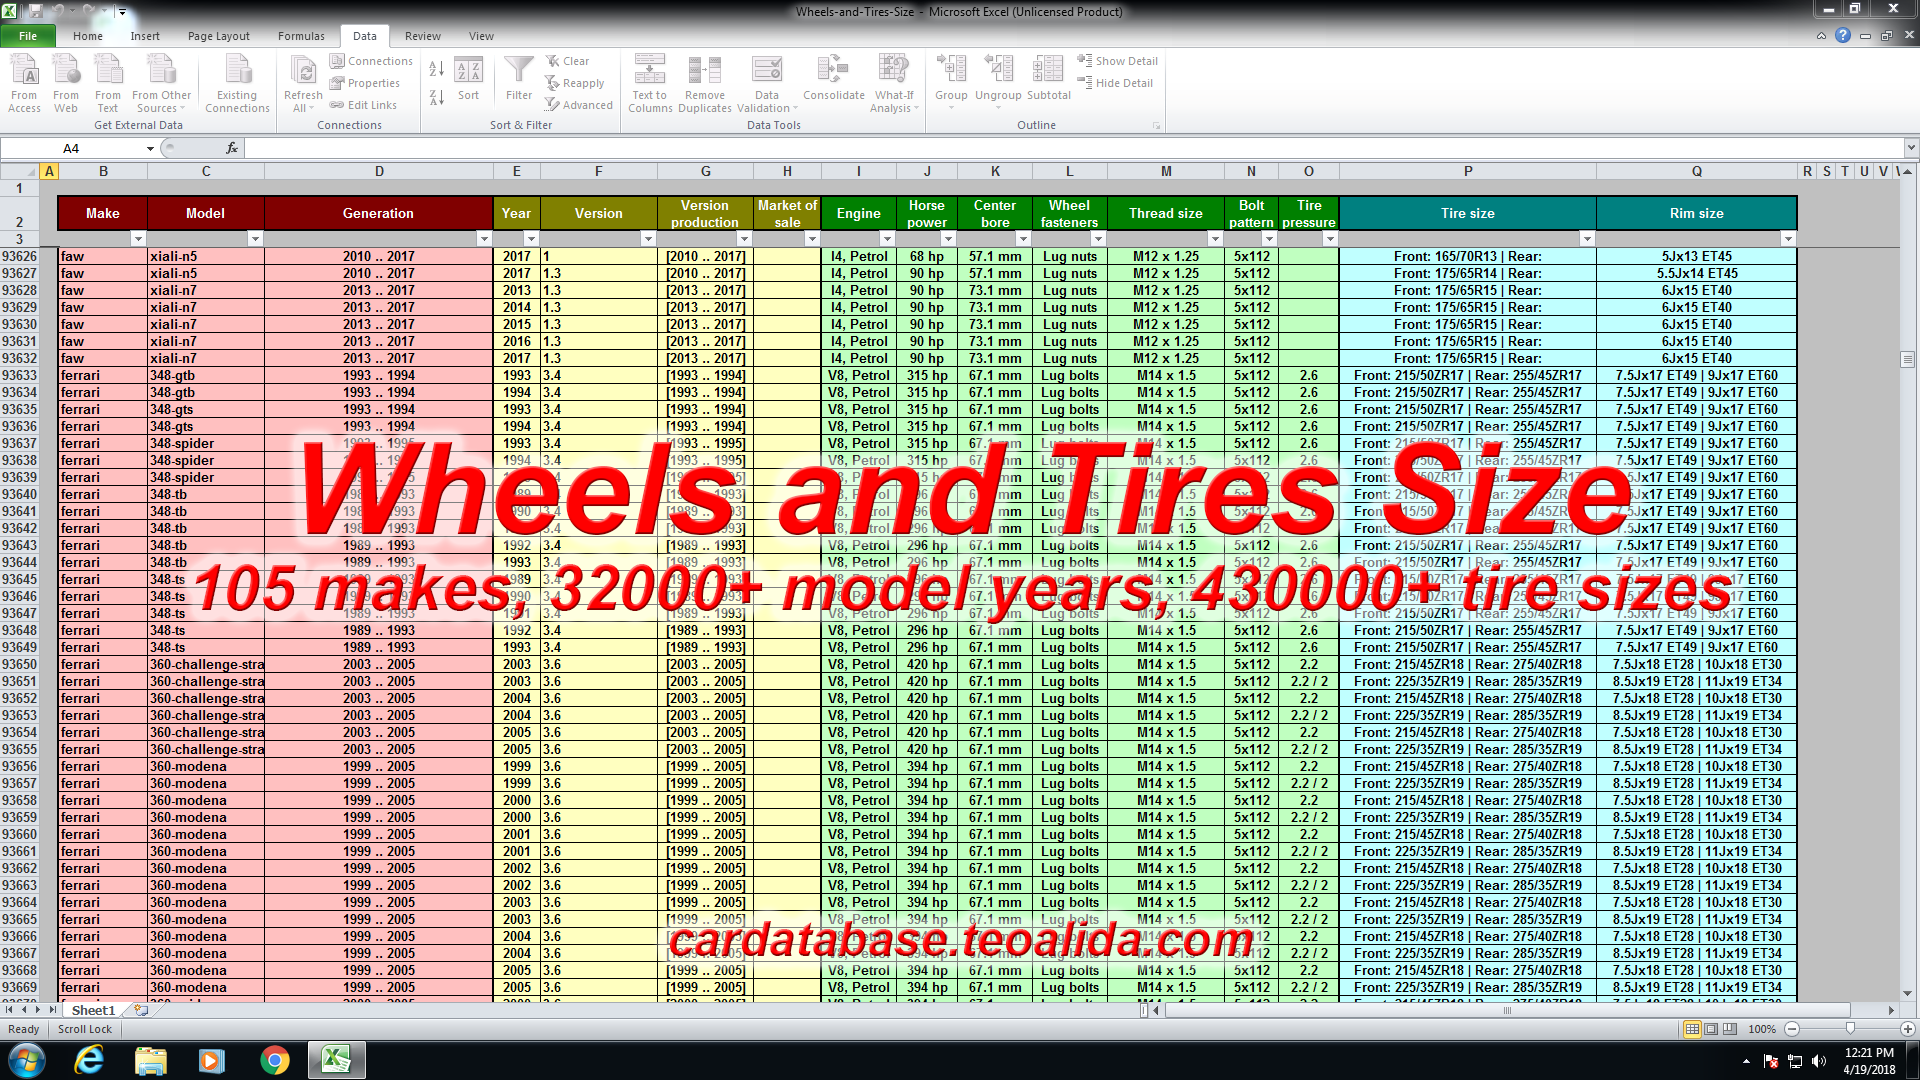 Wheels and tires size database